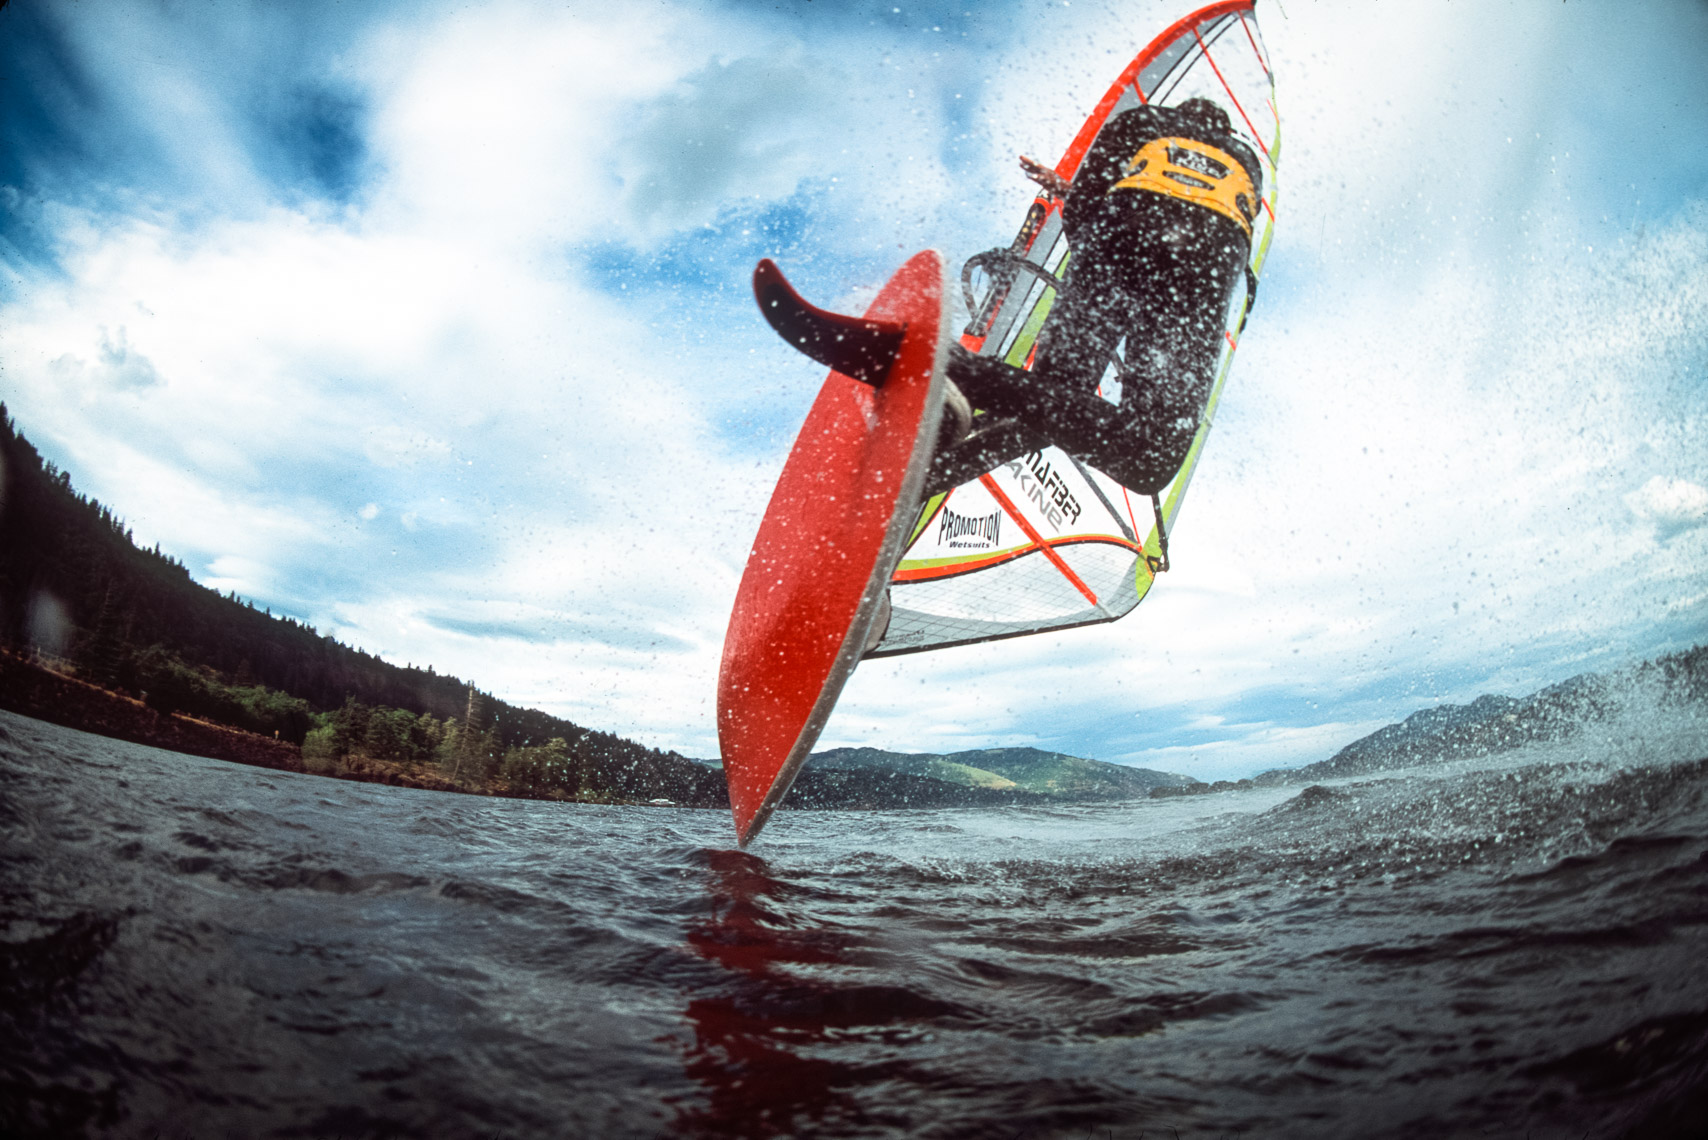 Windsurfing in Hood River Oregon on the Columbia River